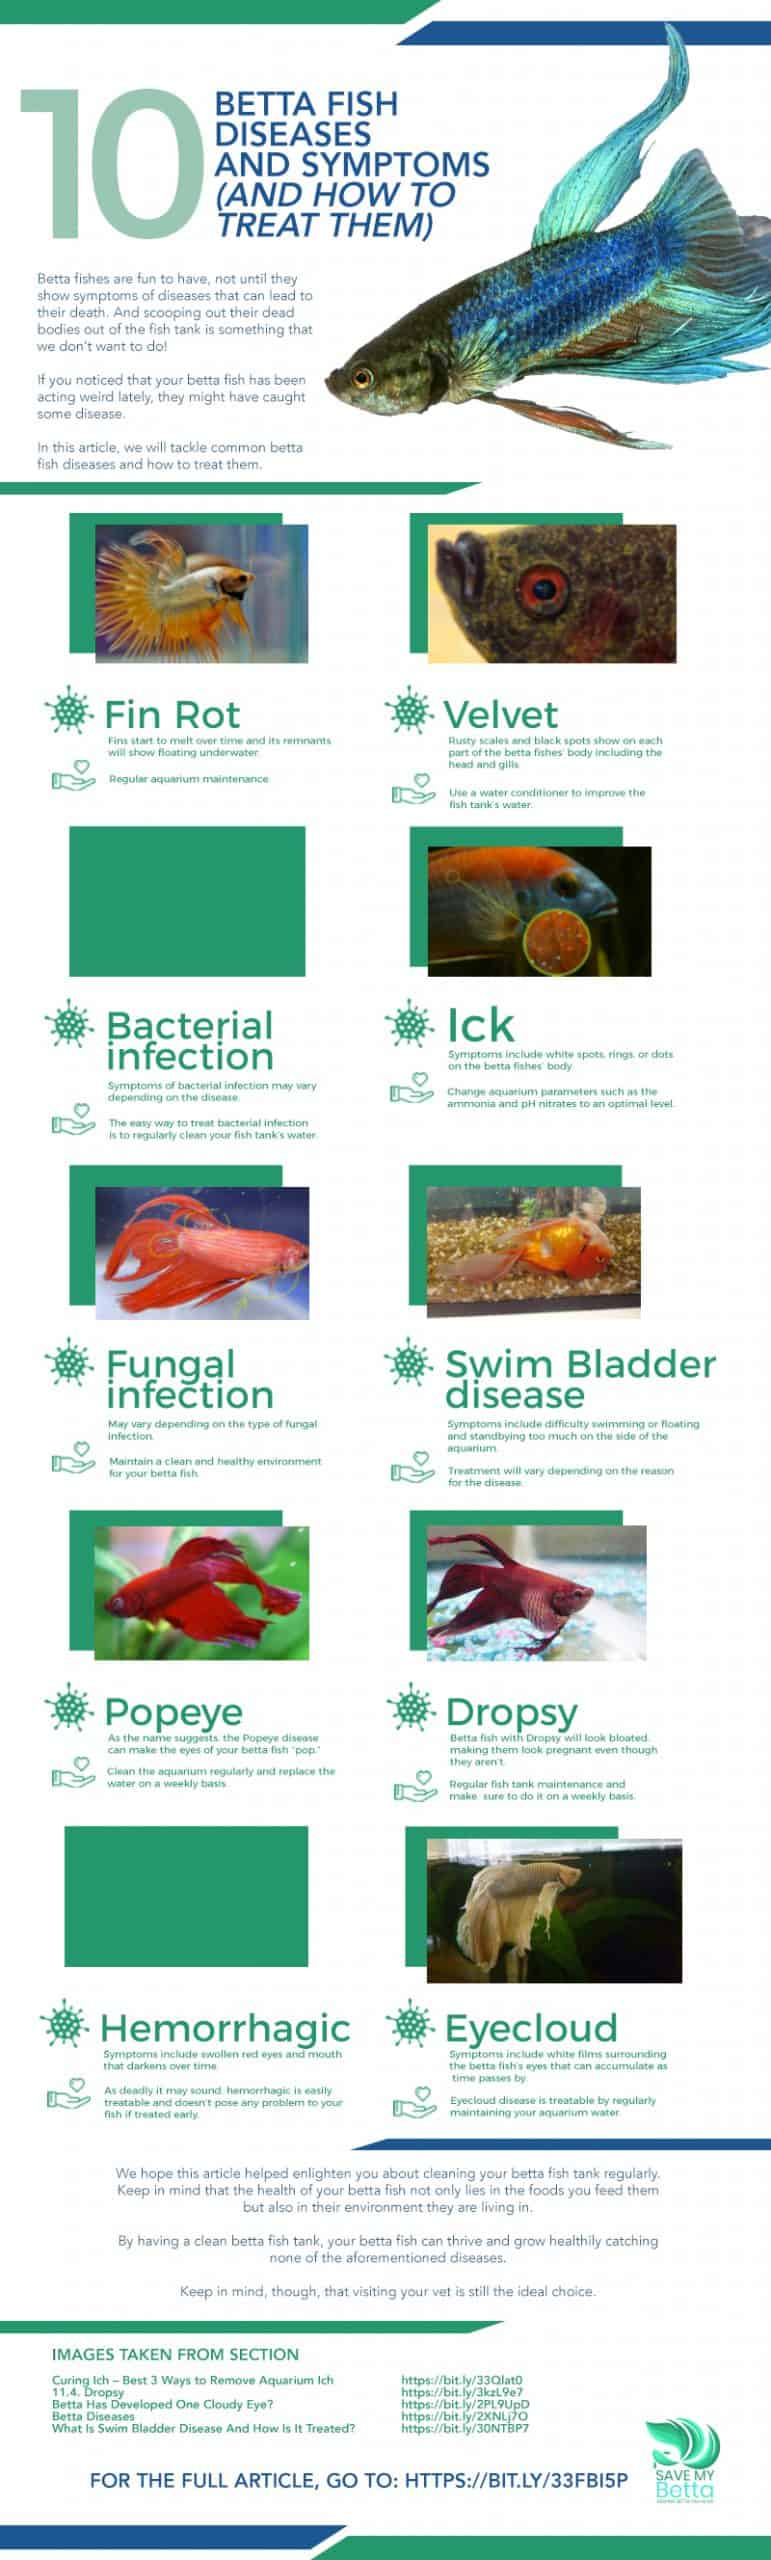 10 Betta Fish Diseases and Symptoms (and How to Treat Them)